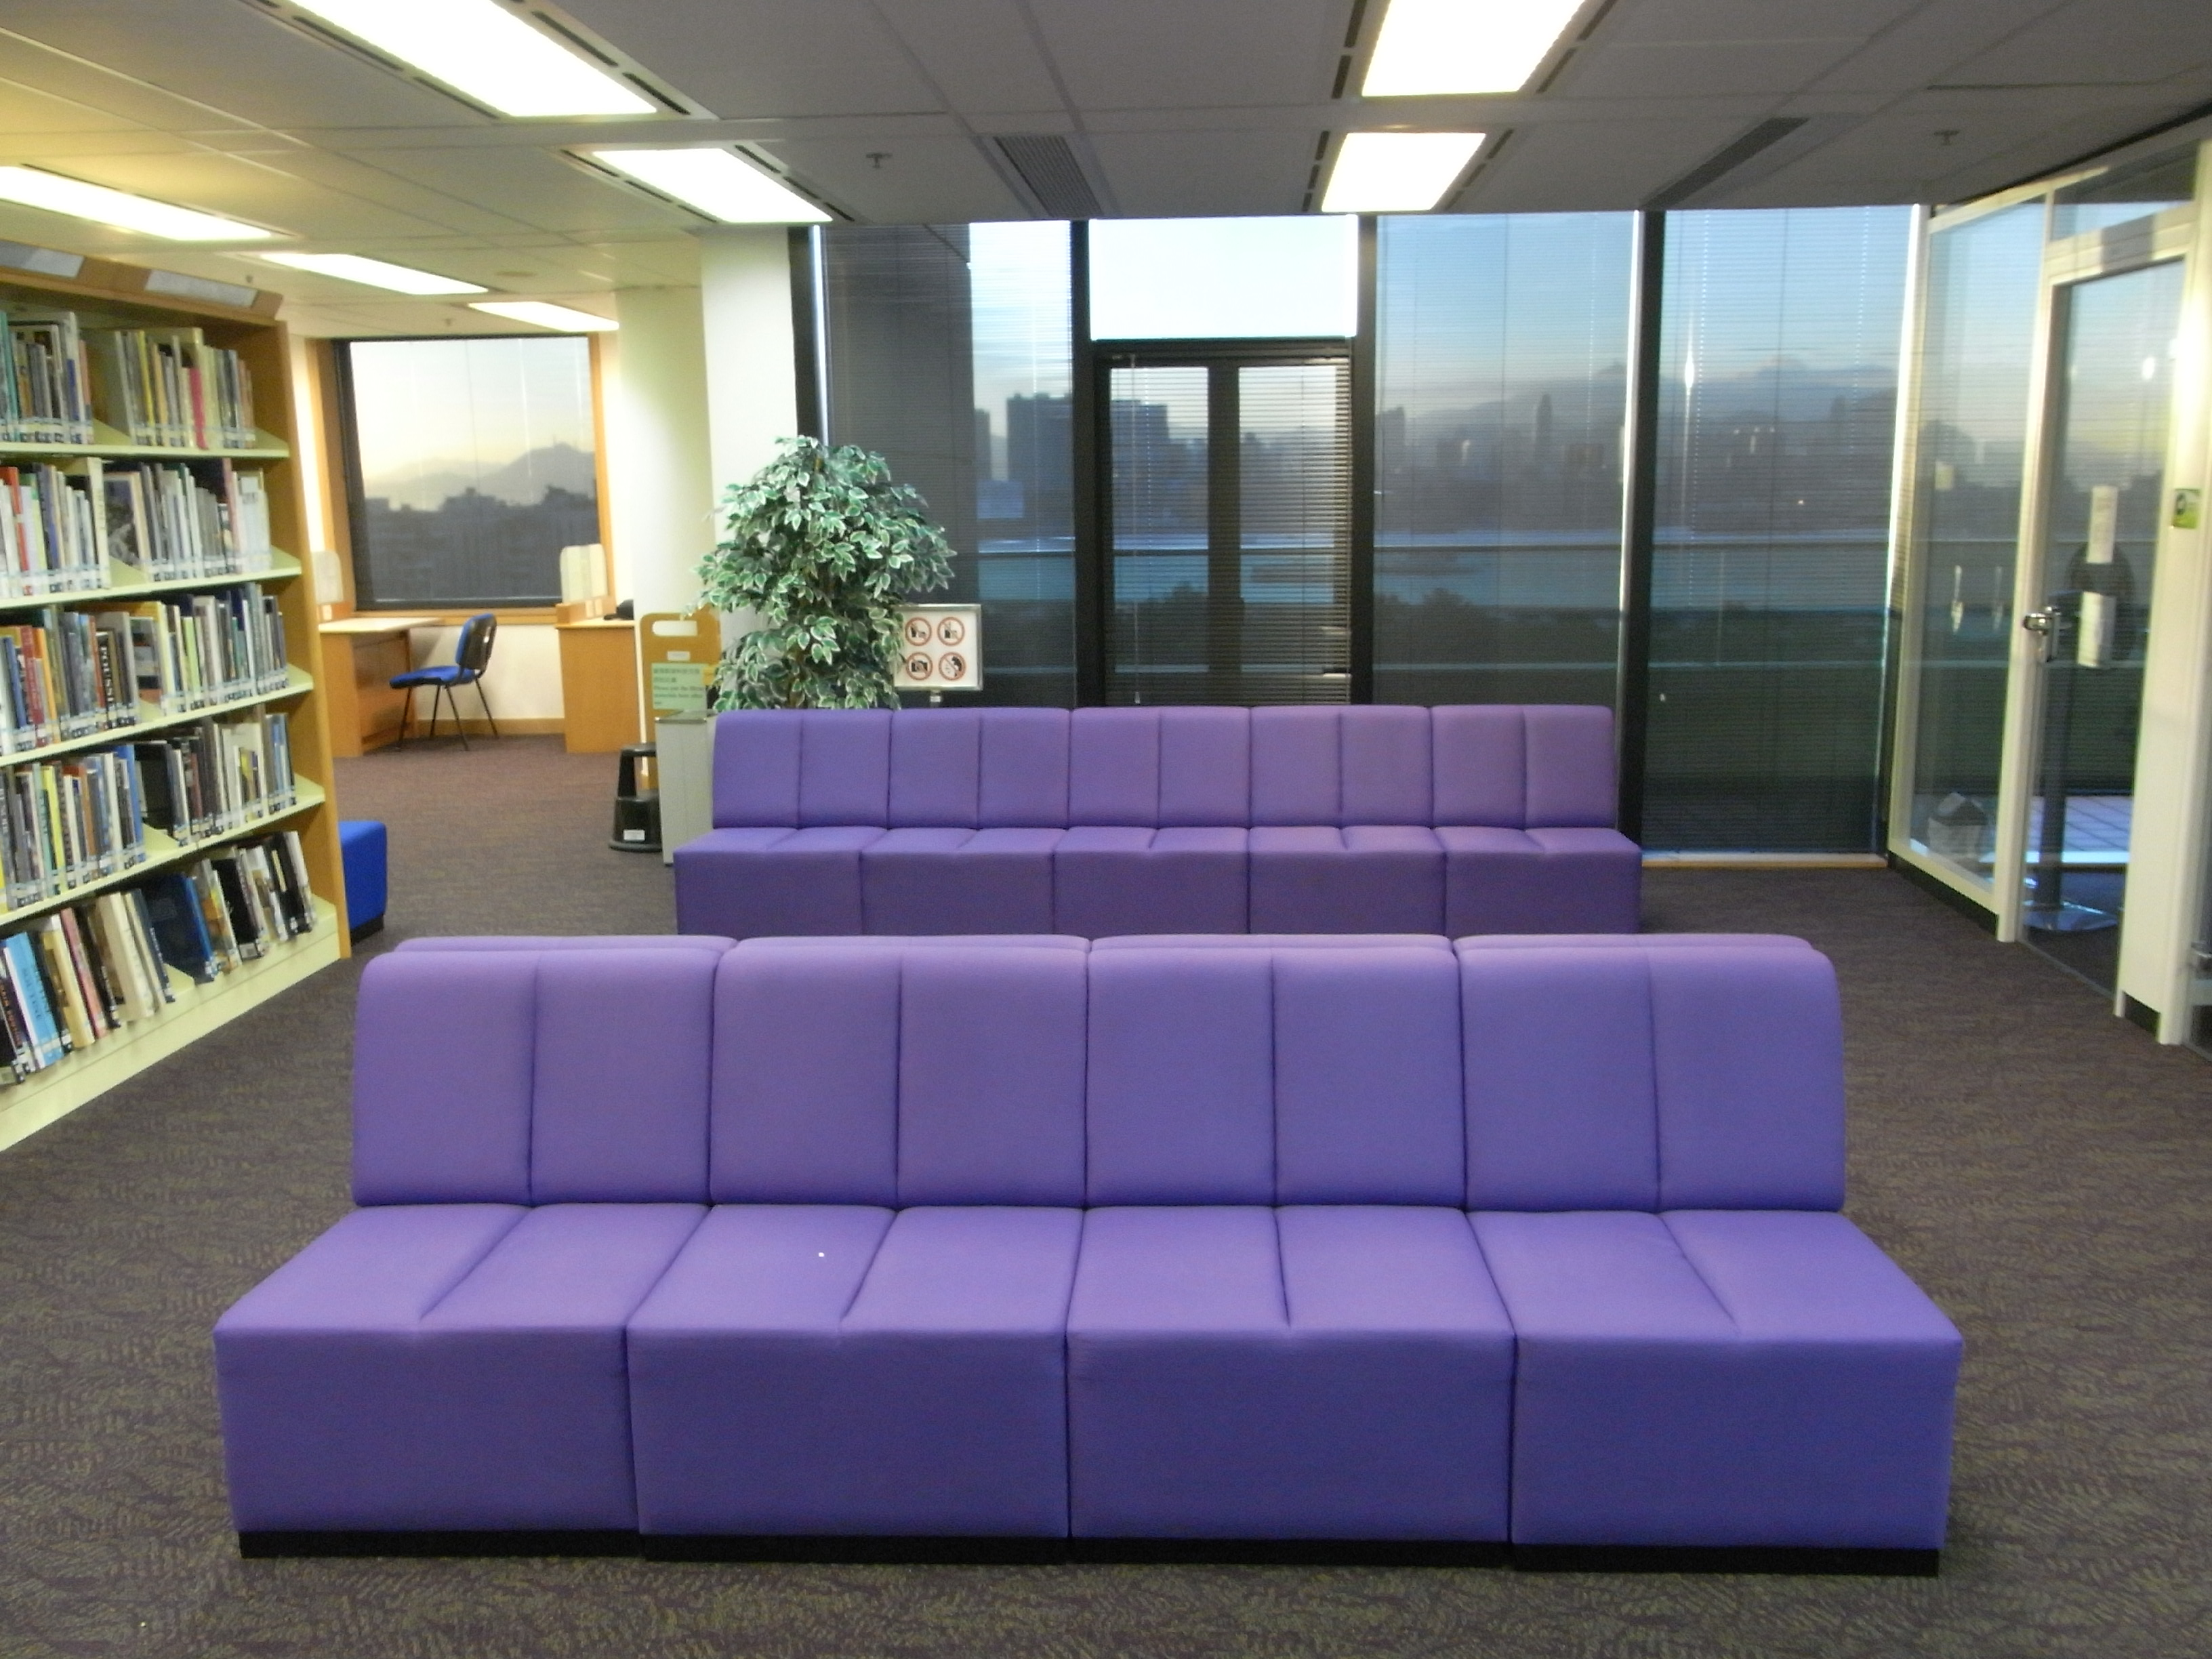 Charmant File:HK 香港中央圖書館 Central Library 10th Floor Interior Lobby Sofa In Purple